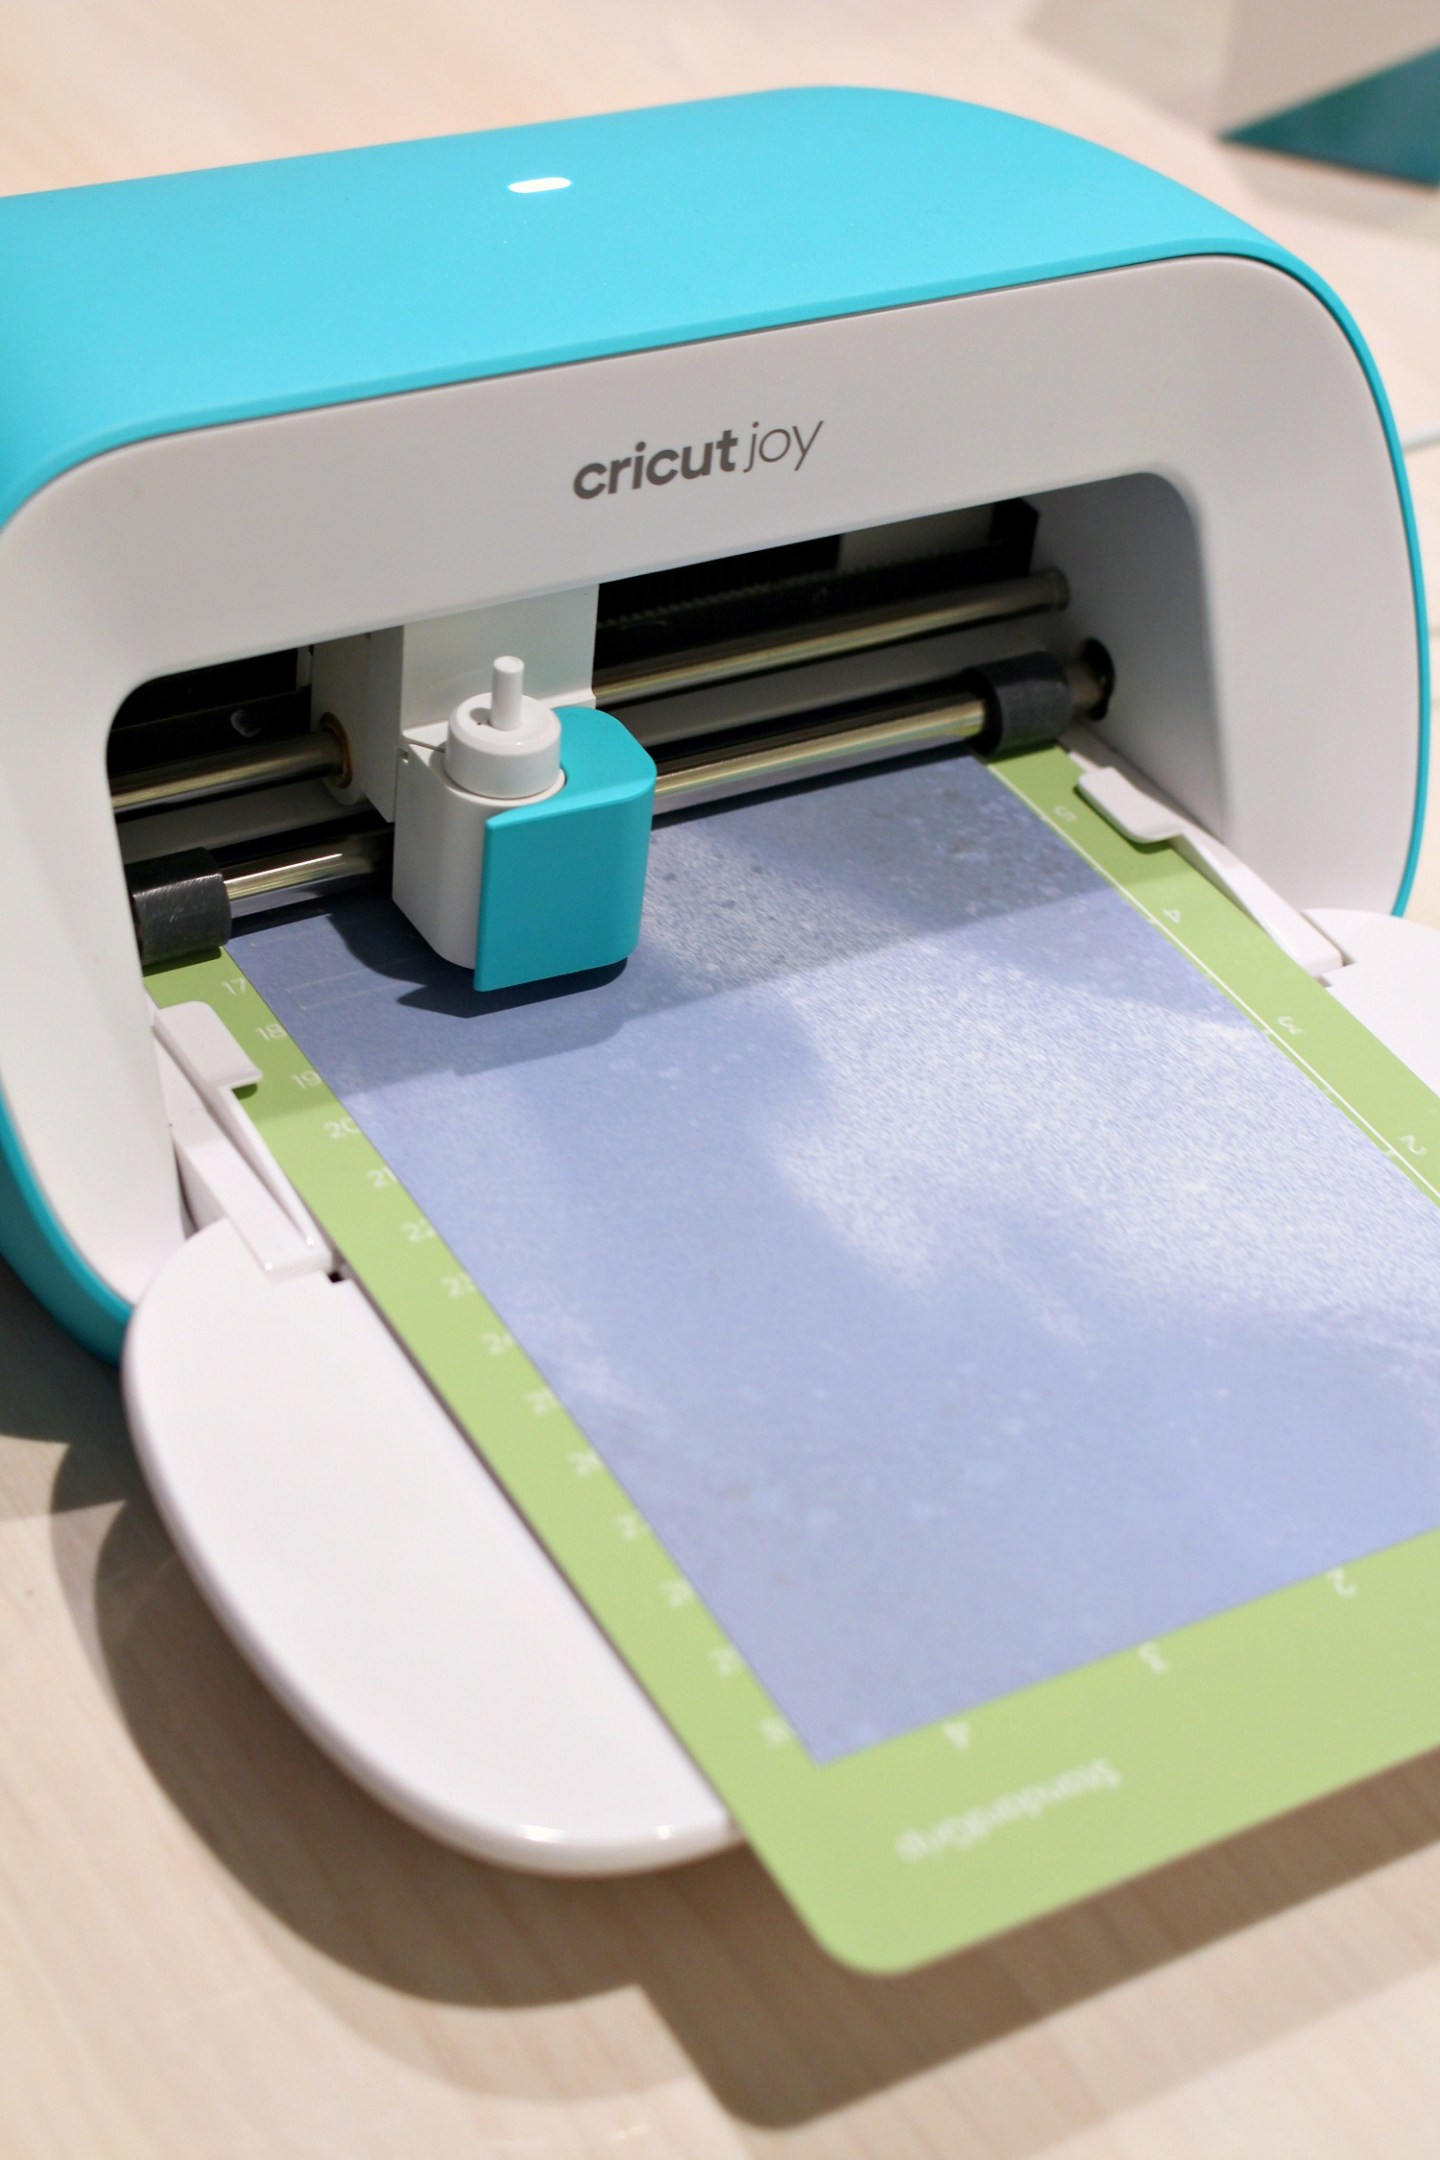 Cricut Infusible Ink Review (Not Sponsored)